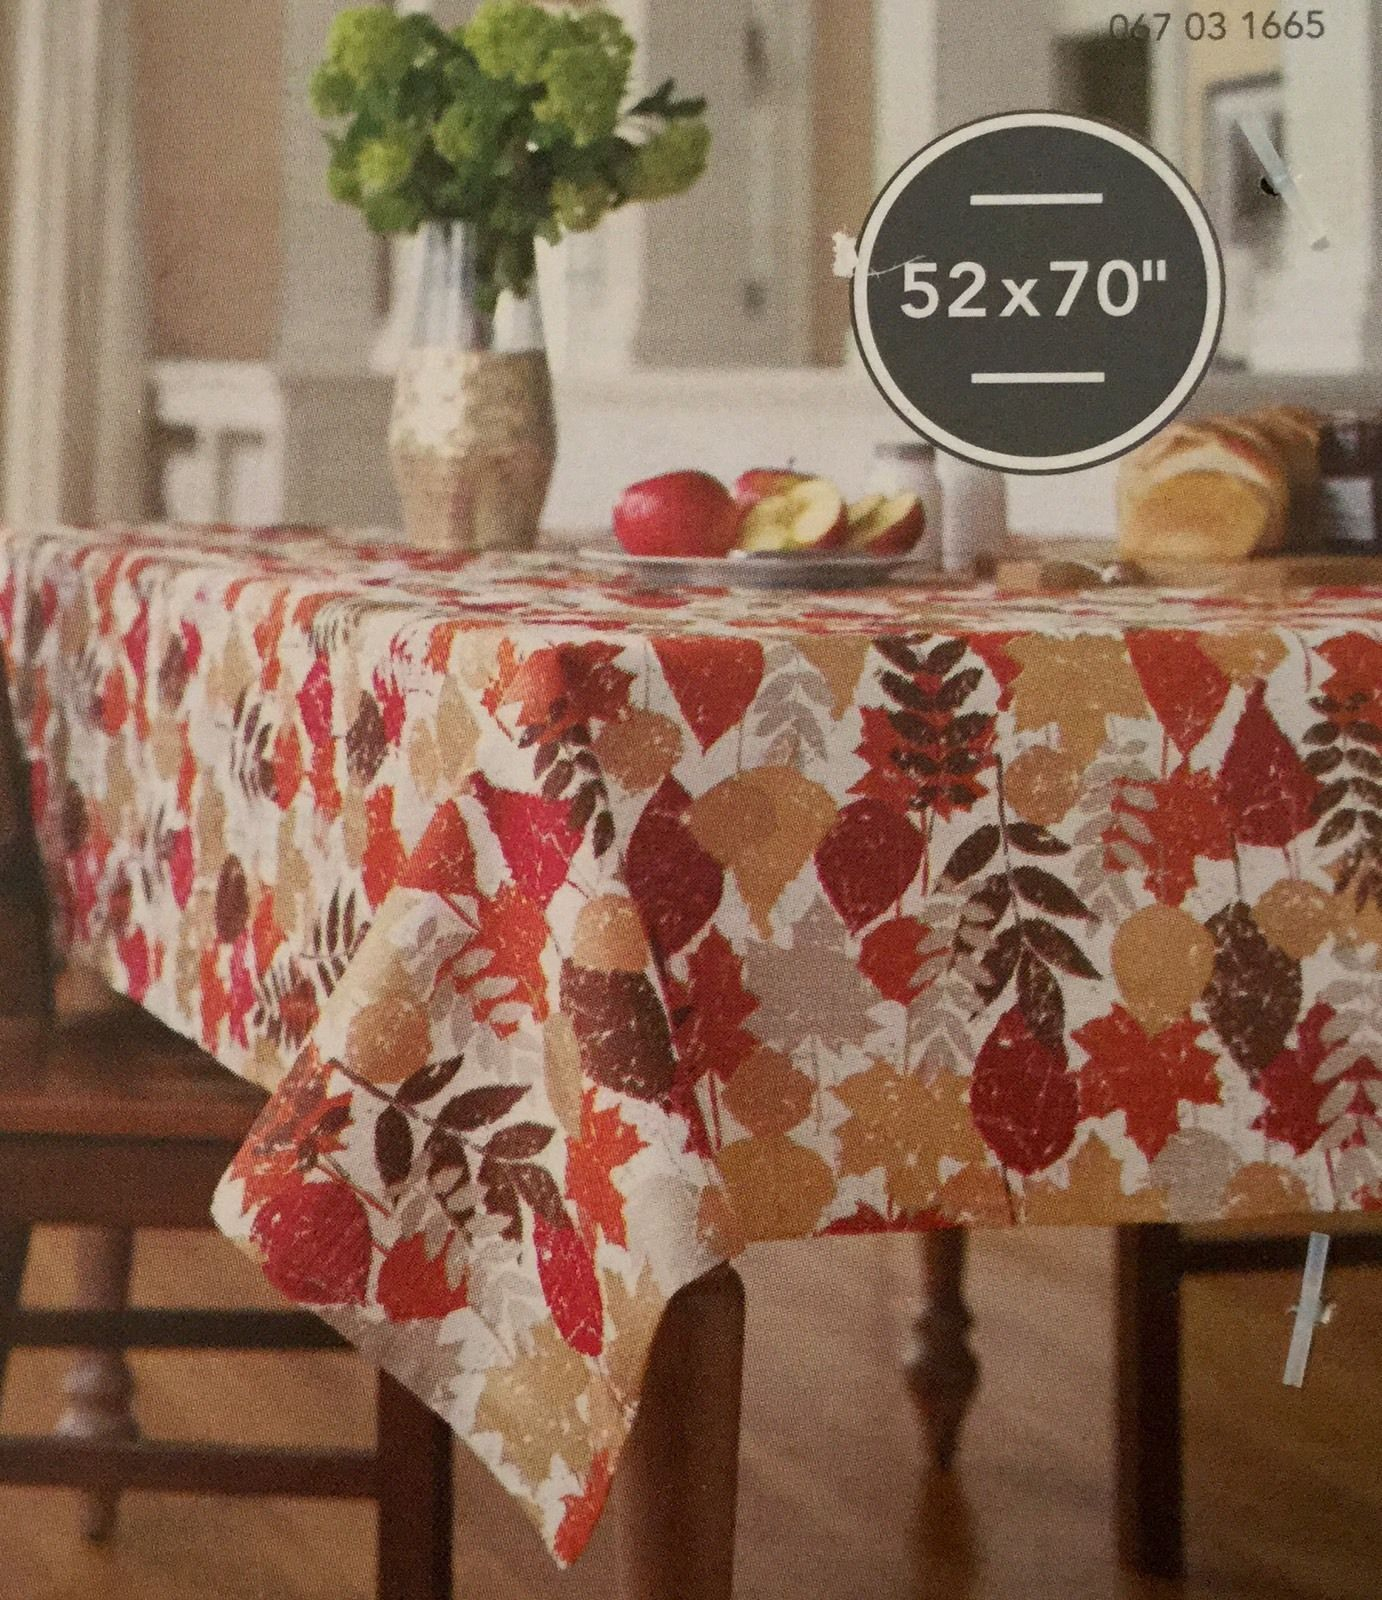 """Threshold OBLONG 52"""" x 70"""" Tablecloth Leaf Print With Gold Metallic Accent NEW - $15.94"""